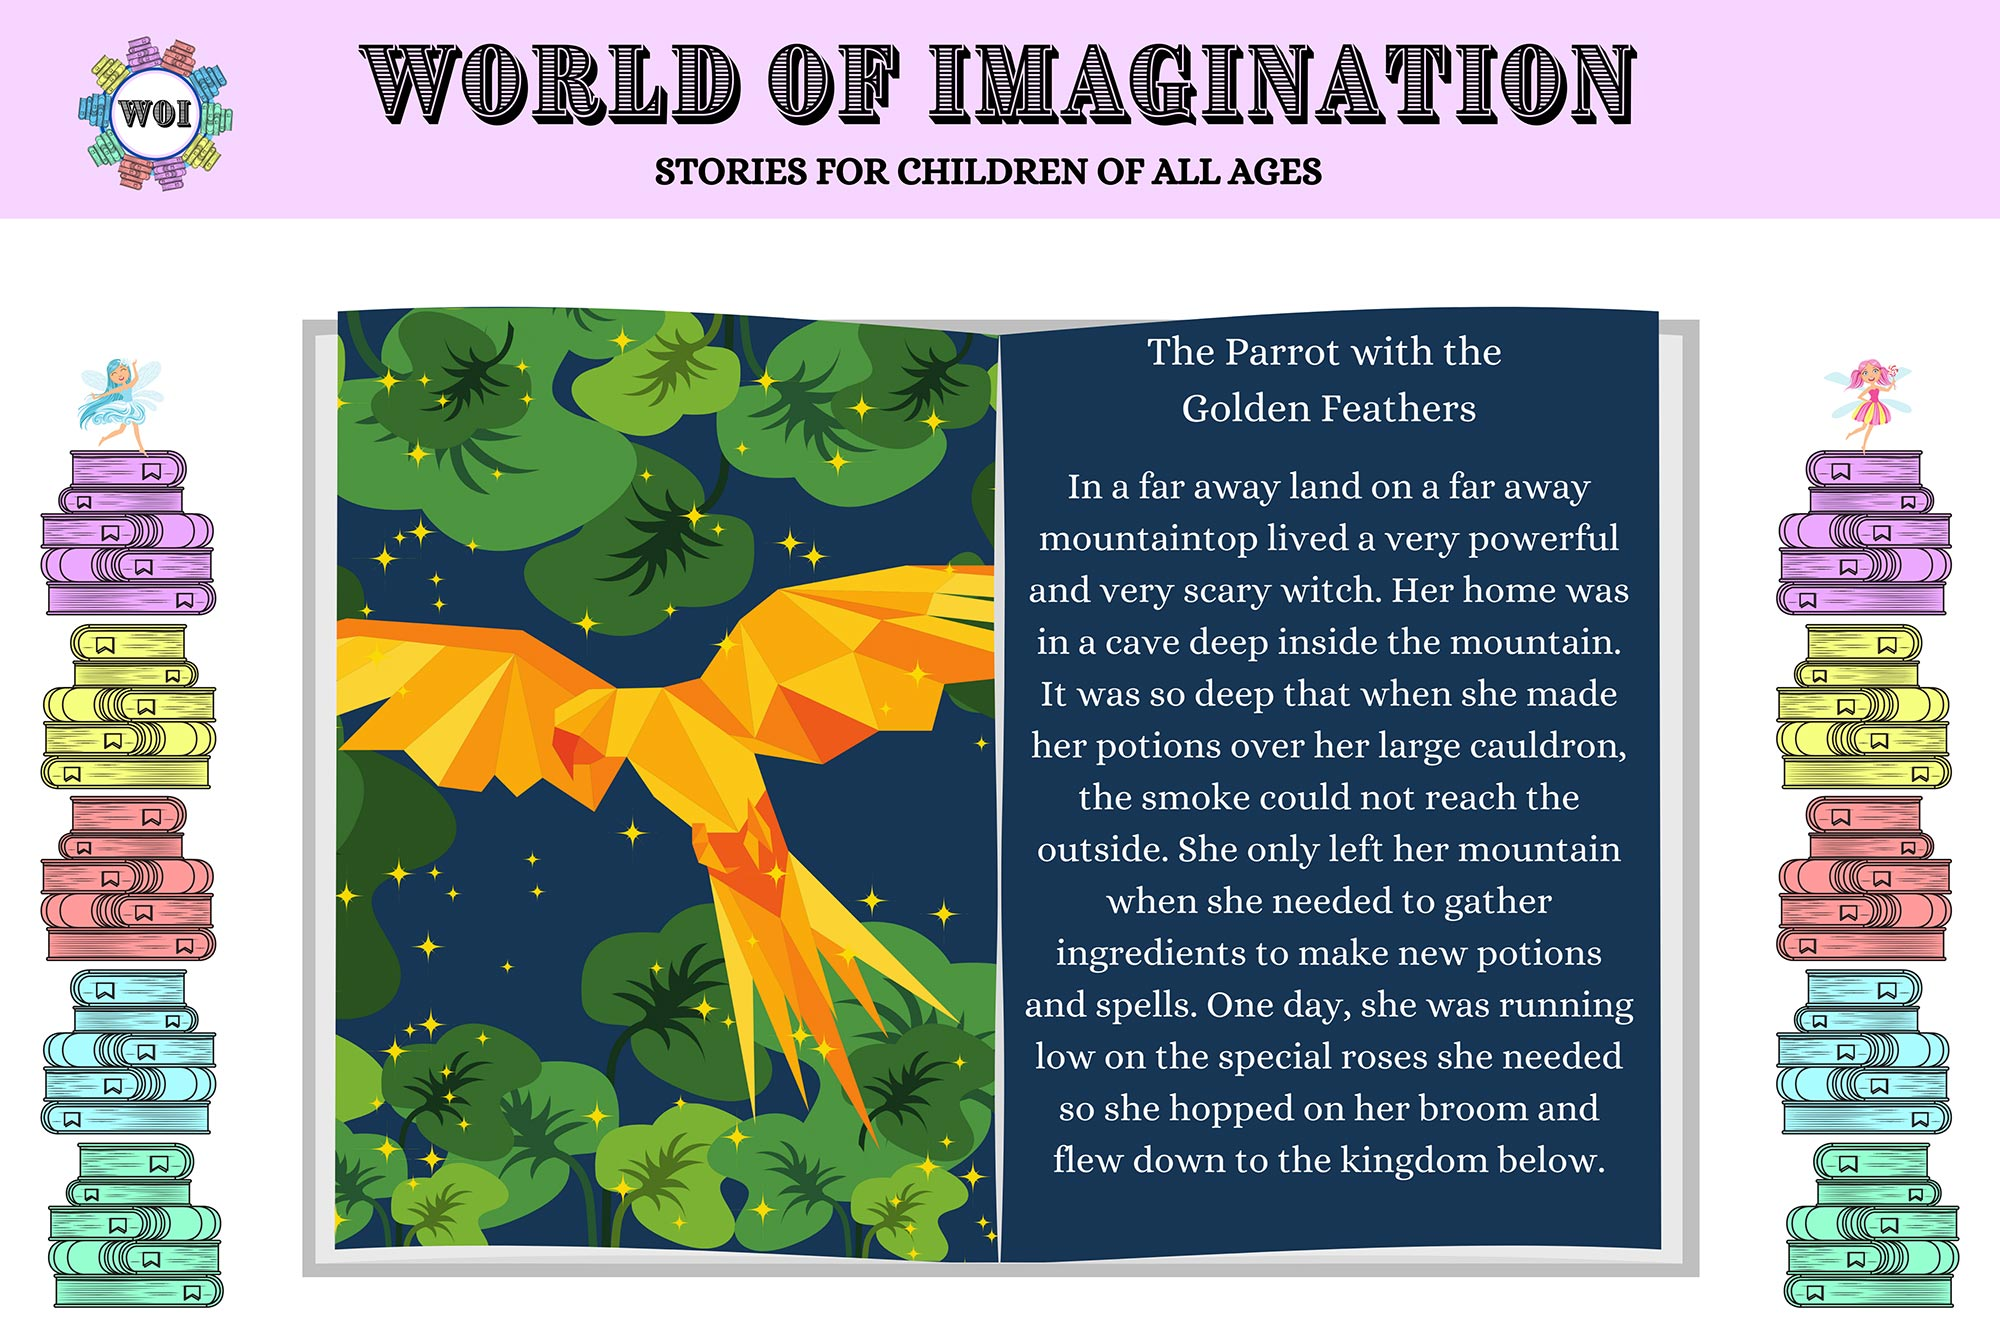 "Screenshot from an excerpt from Merchant's story, The Parrot With the Golden Feathers, on the World of Imagination website. An open book is framed by stacks of books on the left and right. One the left hand page of the open book, we see an orange origami-like bird. On the right, the story reads ""The Parrot With the Golden Feathers: In a far away land on a far away mountaintop lived a very powerful and very scary witch. Her home was in a cave deep inside the mountain. It was so deep inside the mountain. It was so deep that when she made her potions over her large cauldrons, the smoke could not reach the outside. She only left her mountain when she needed to gather ingredients to make new potions and spells. One day, she was running low on the special roses she needed so she hopped on her broom and flew down to the kingdom below."""